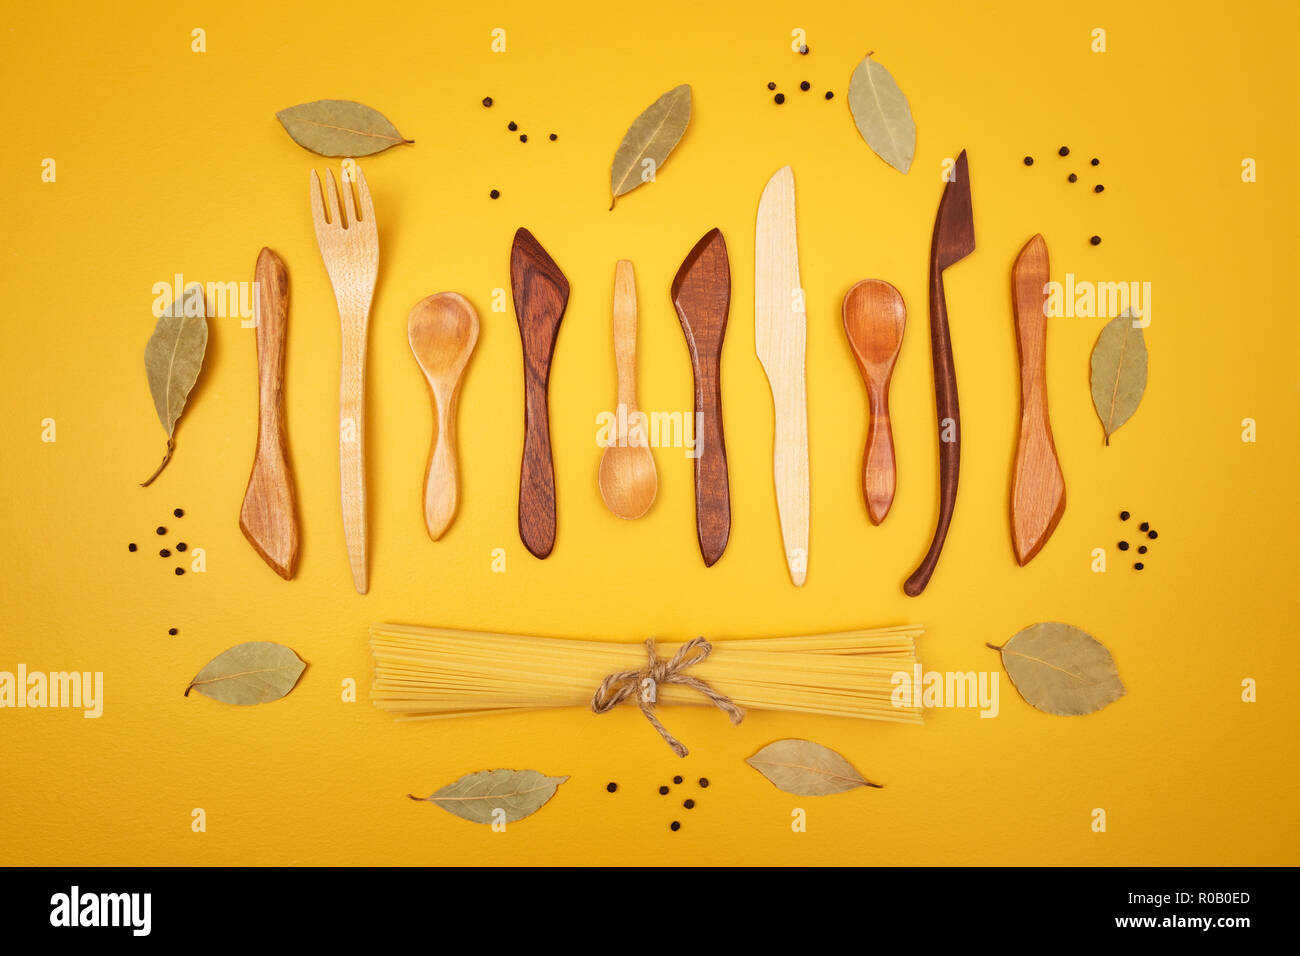 Handcrafted wooden utensils, pasta and spices on bright yellow background. - Stock Image